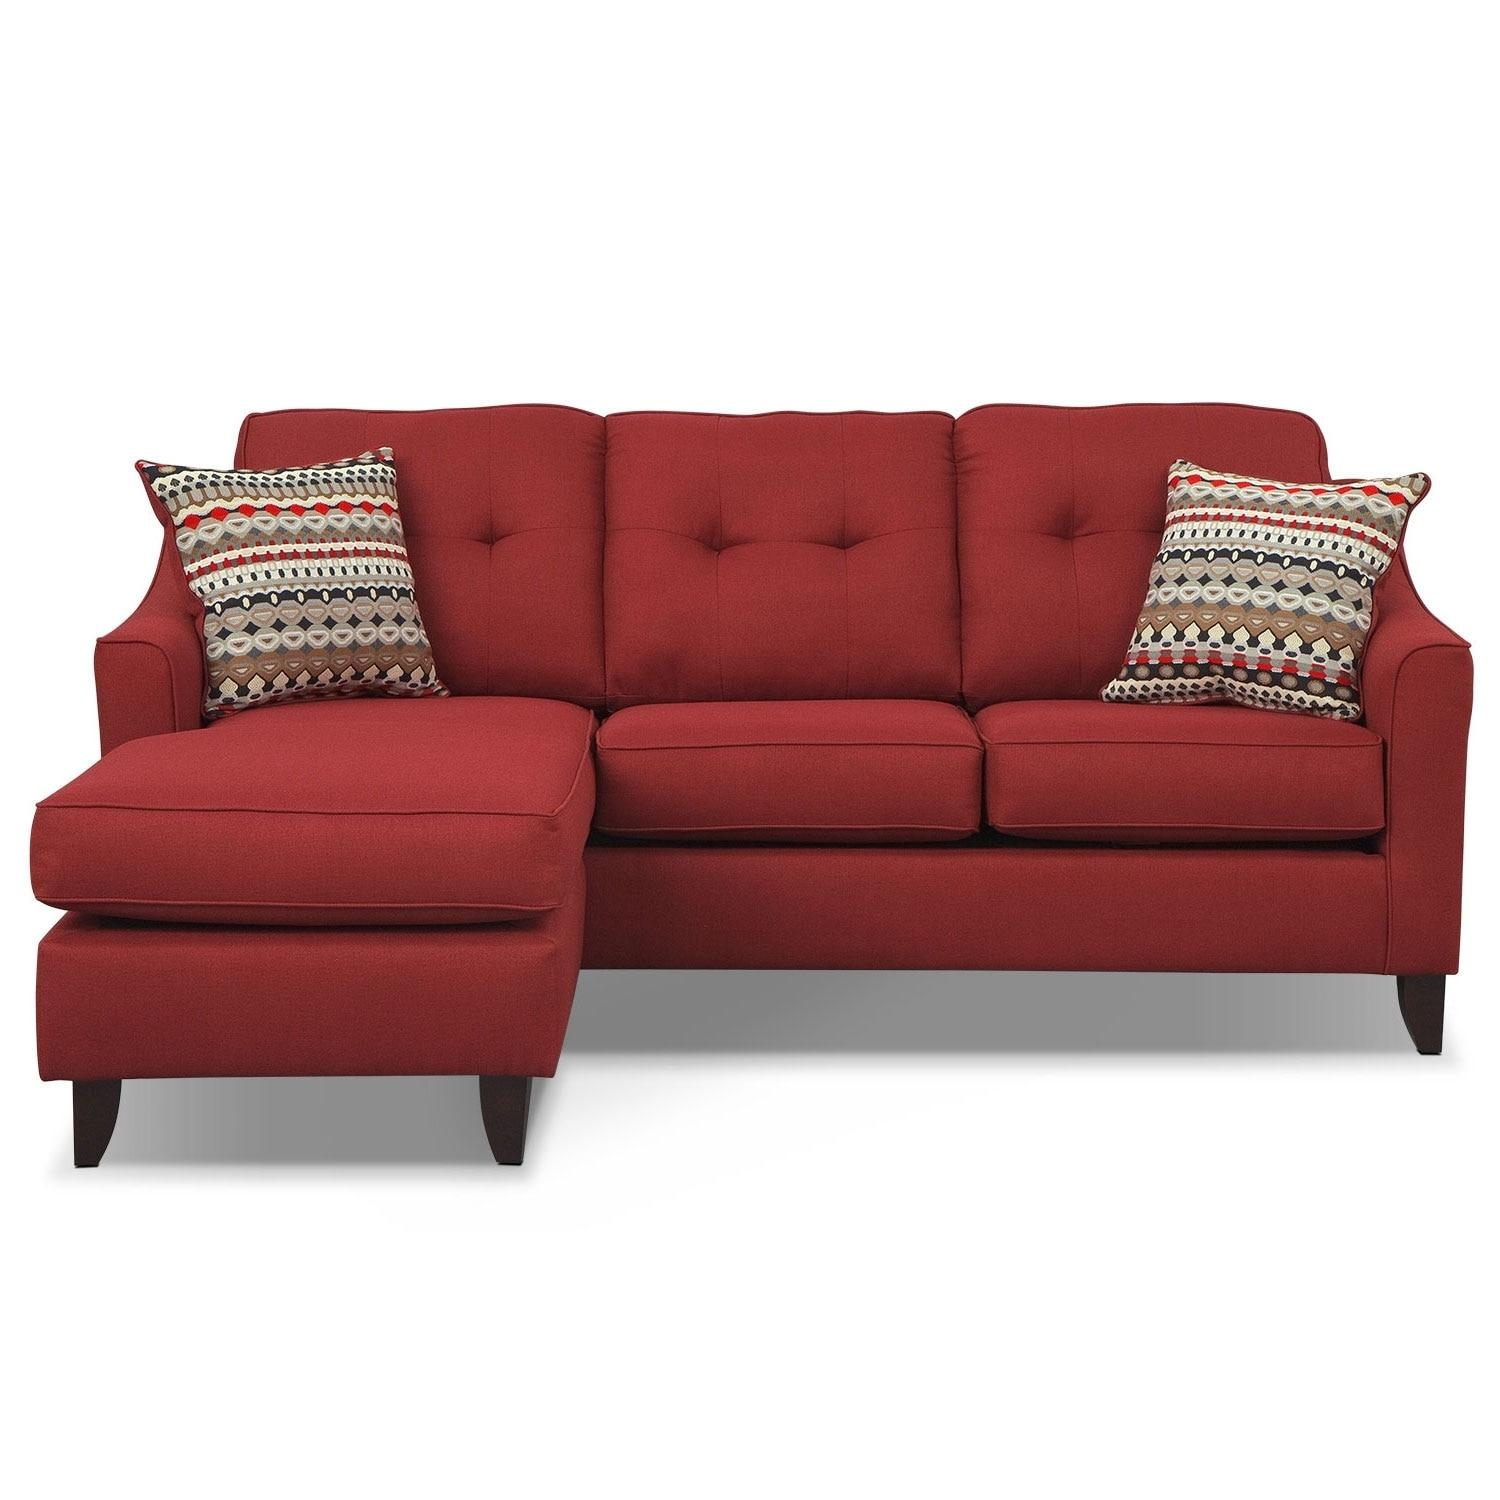 Marco Chaise Sofa – Red | Value City Furniture Within Chaise Sofas (Image 16 of 20)